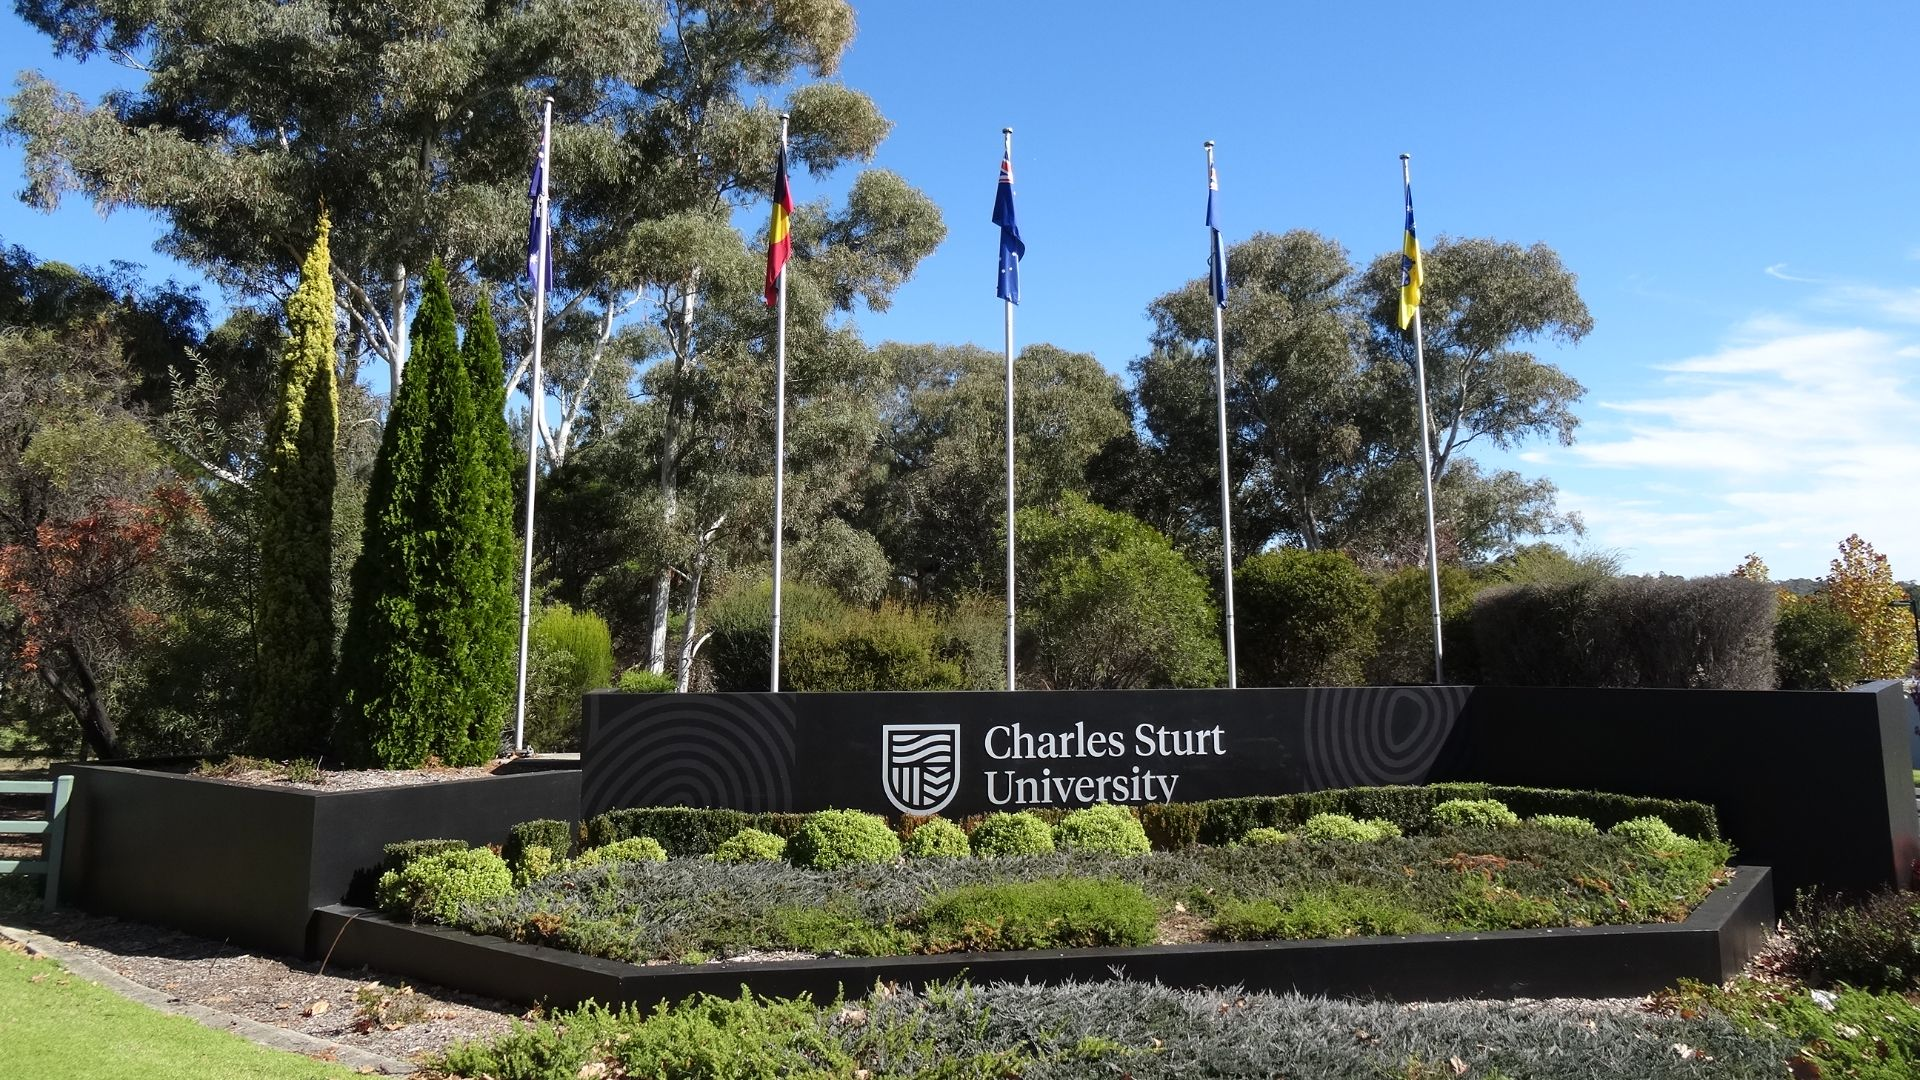 For second year running, Charles Sturt earns 'Employer of Choice for Gender Equality' citation